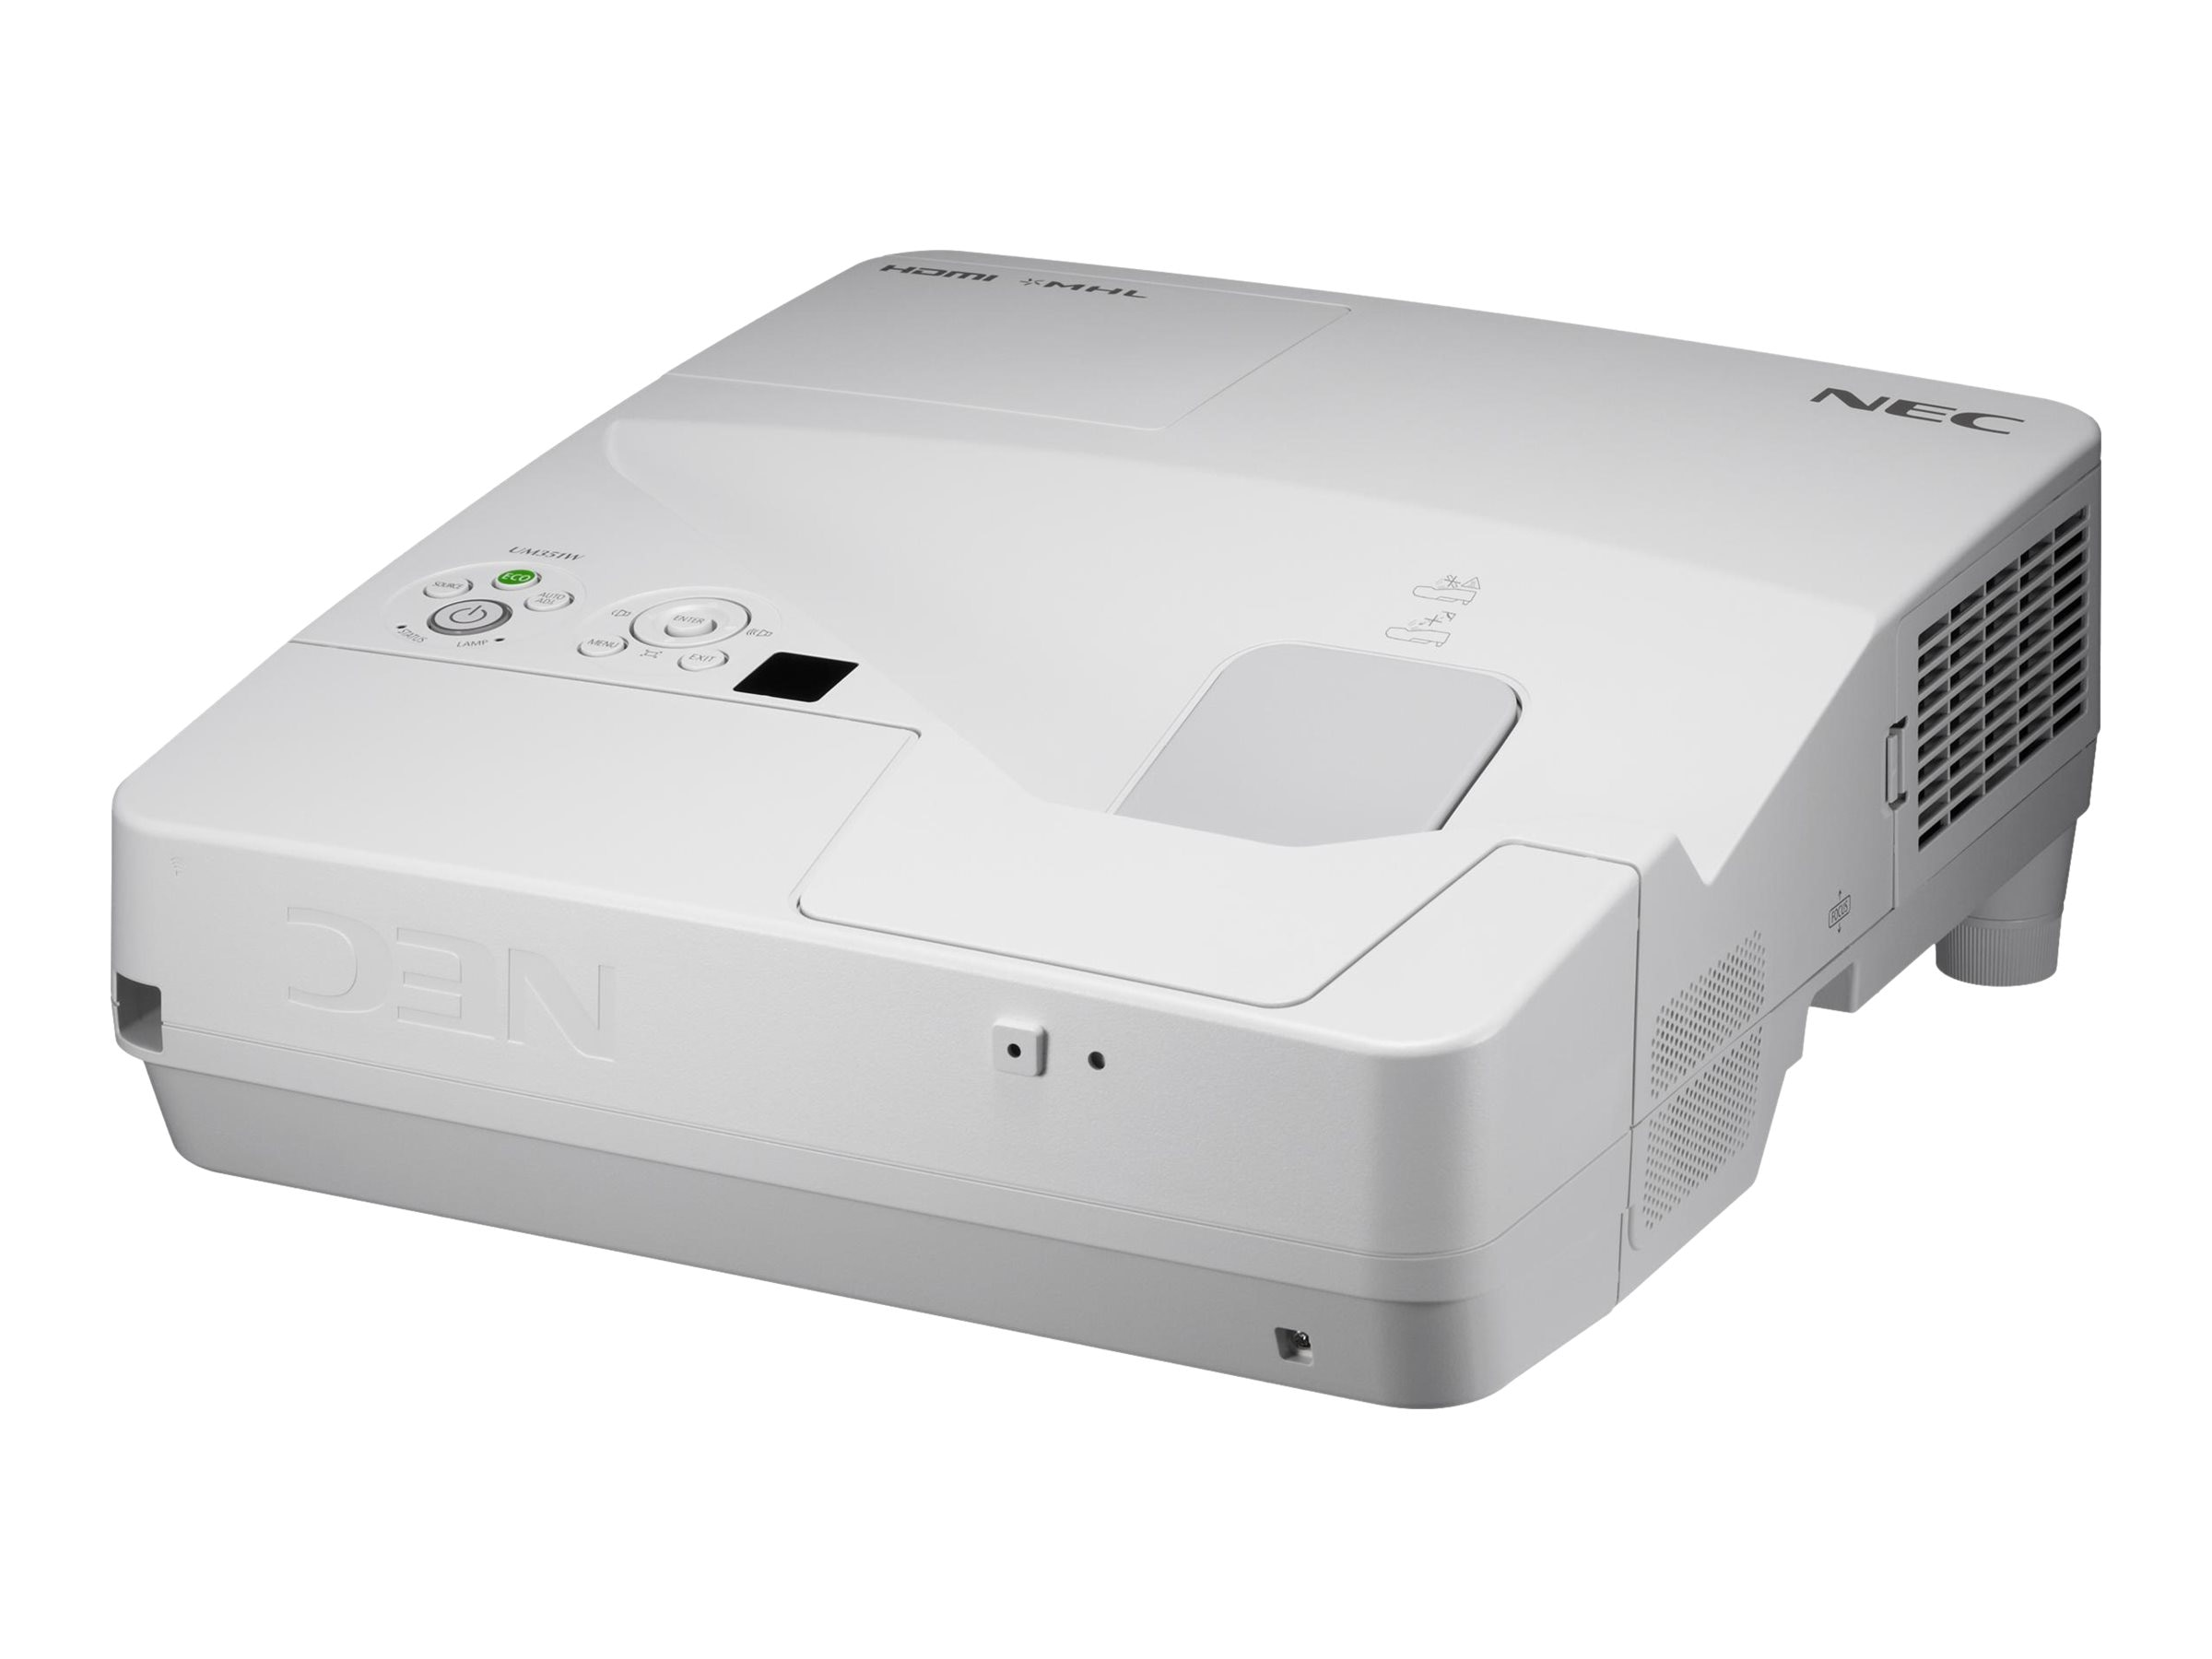 NEC UM361X Ultra Short Throw LCD Projector, 3600 Lumens, White, NP-UM361X, 18193120, Projectors